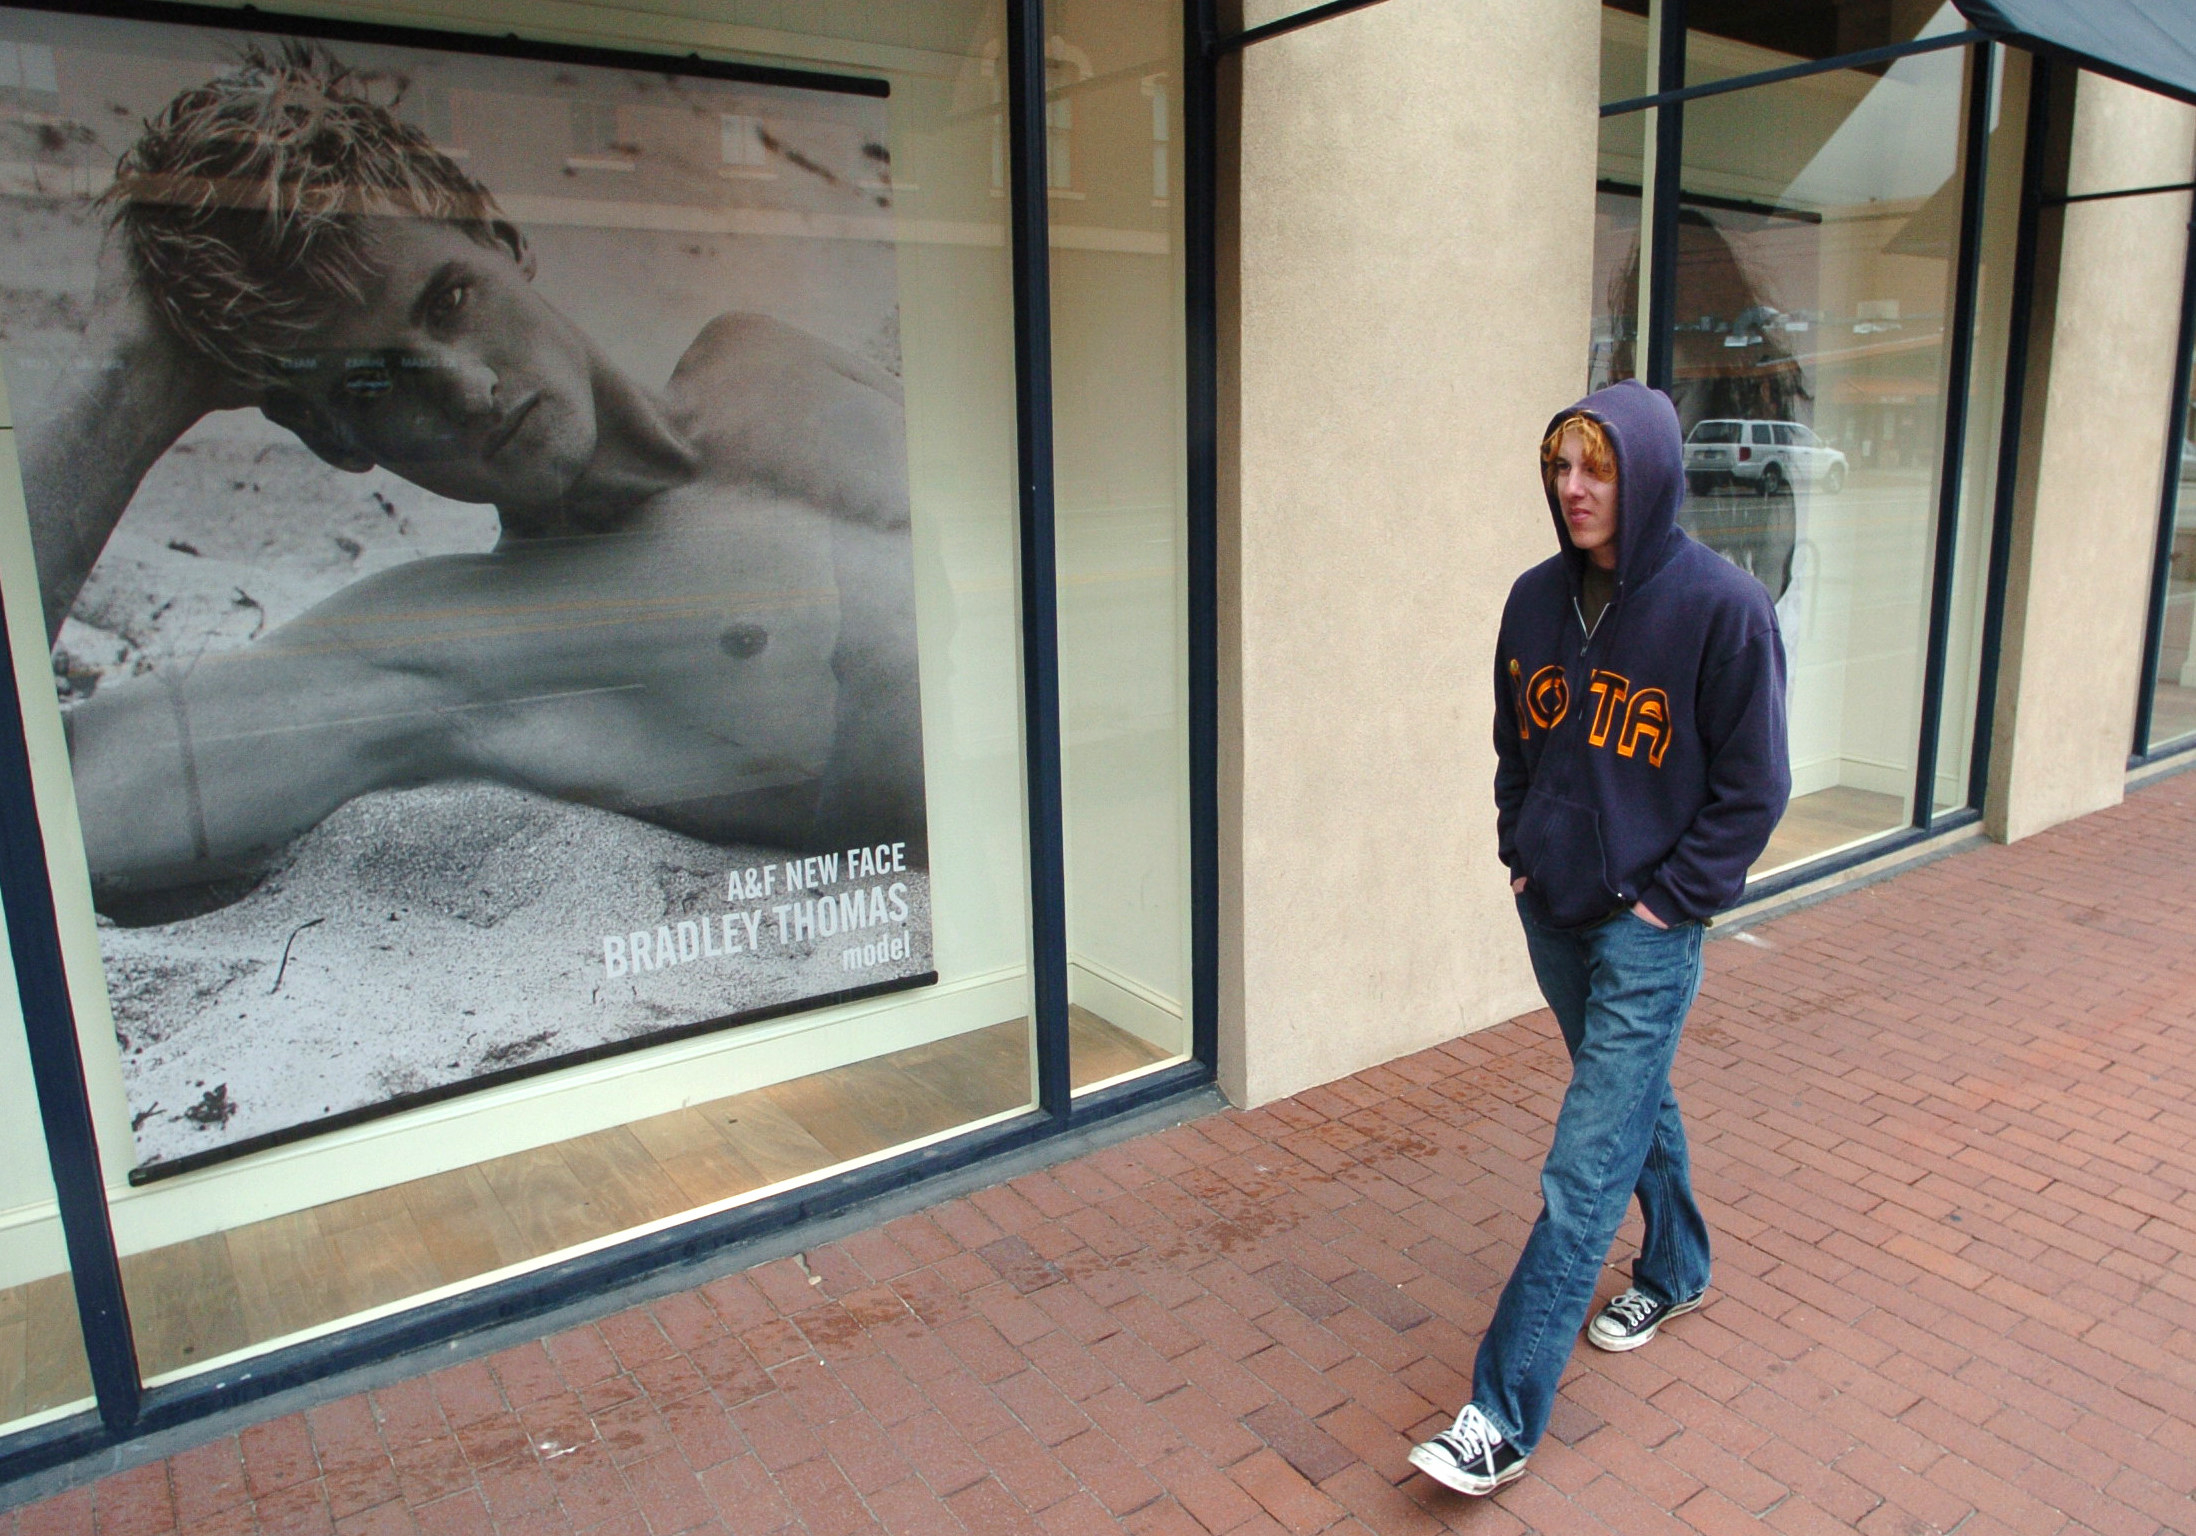 Man walking by A&F store window with a photo of a shirtless man in it